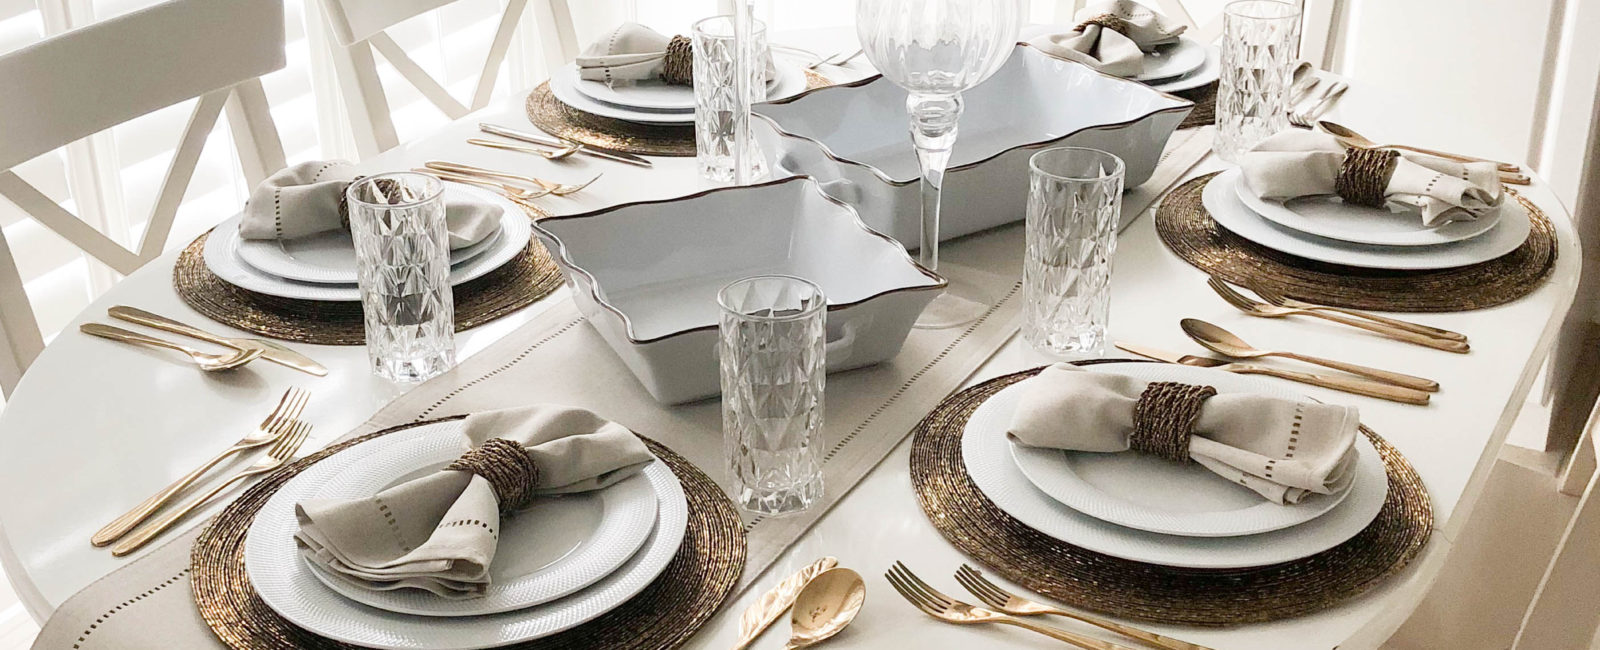 Creating a elegant table for Thanksgiving Dinner